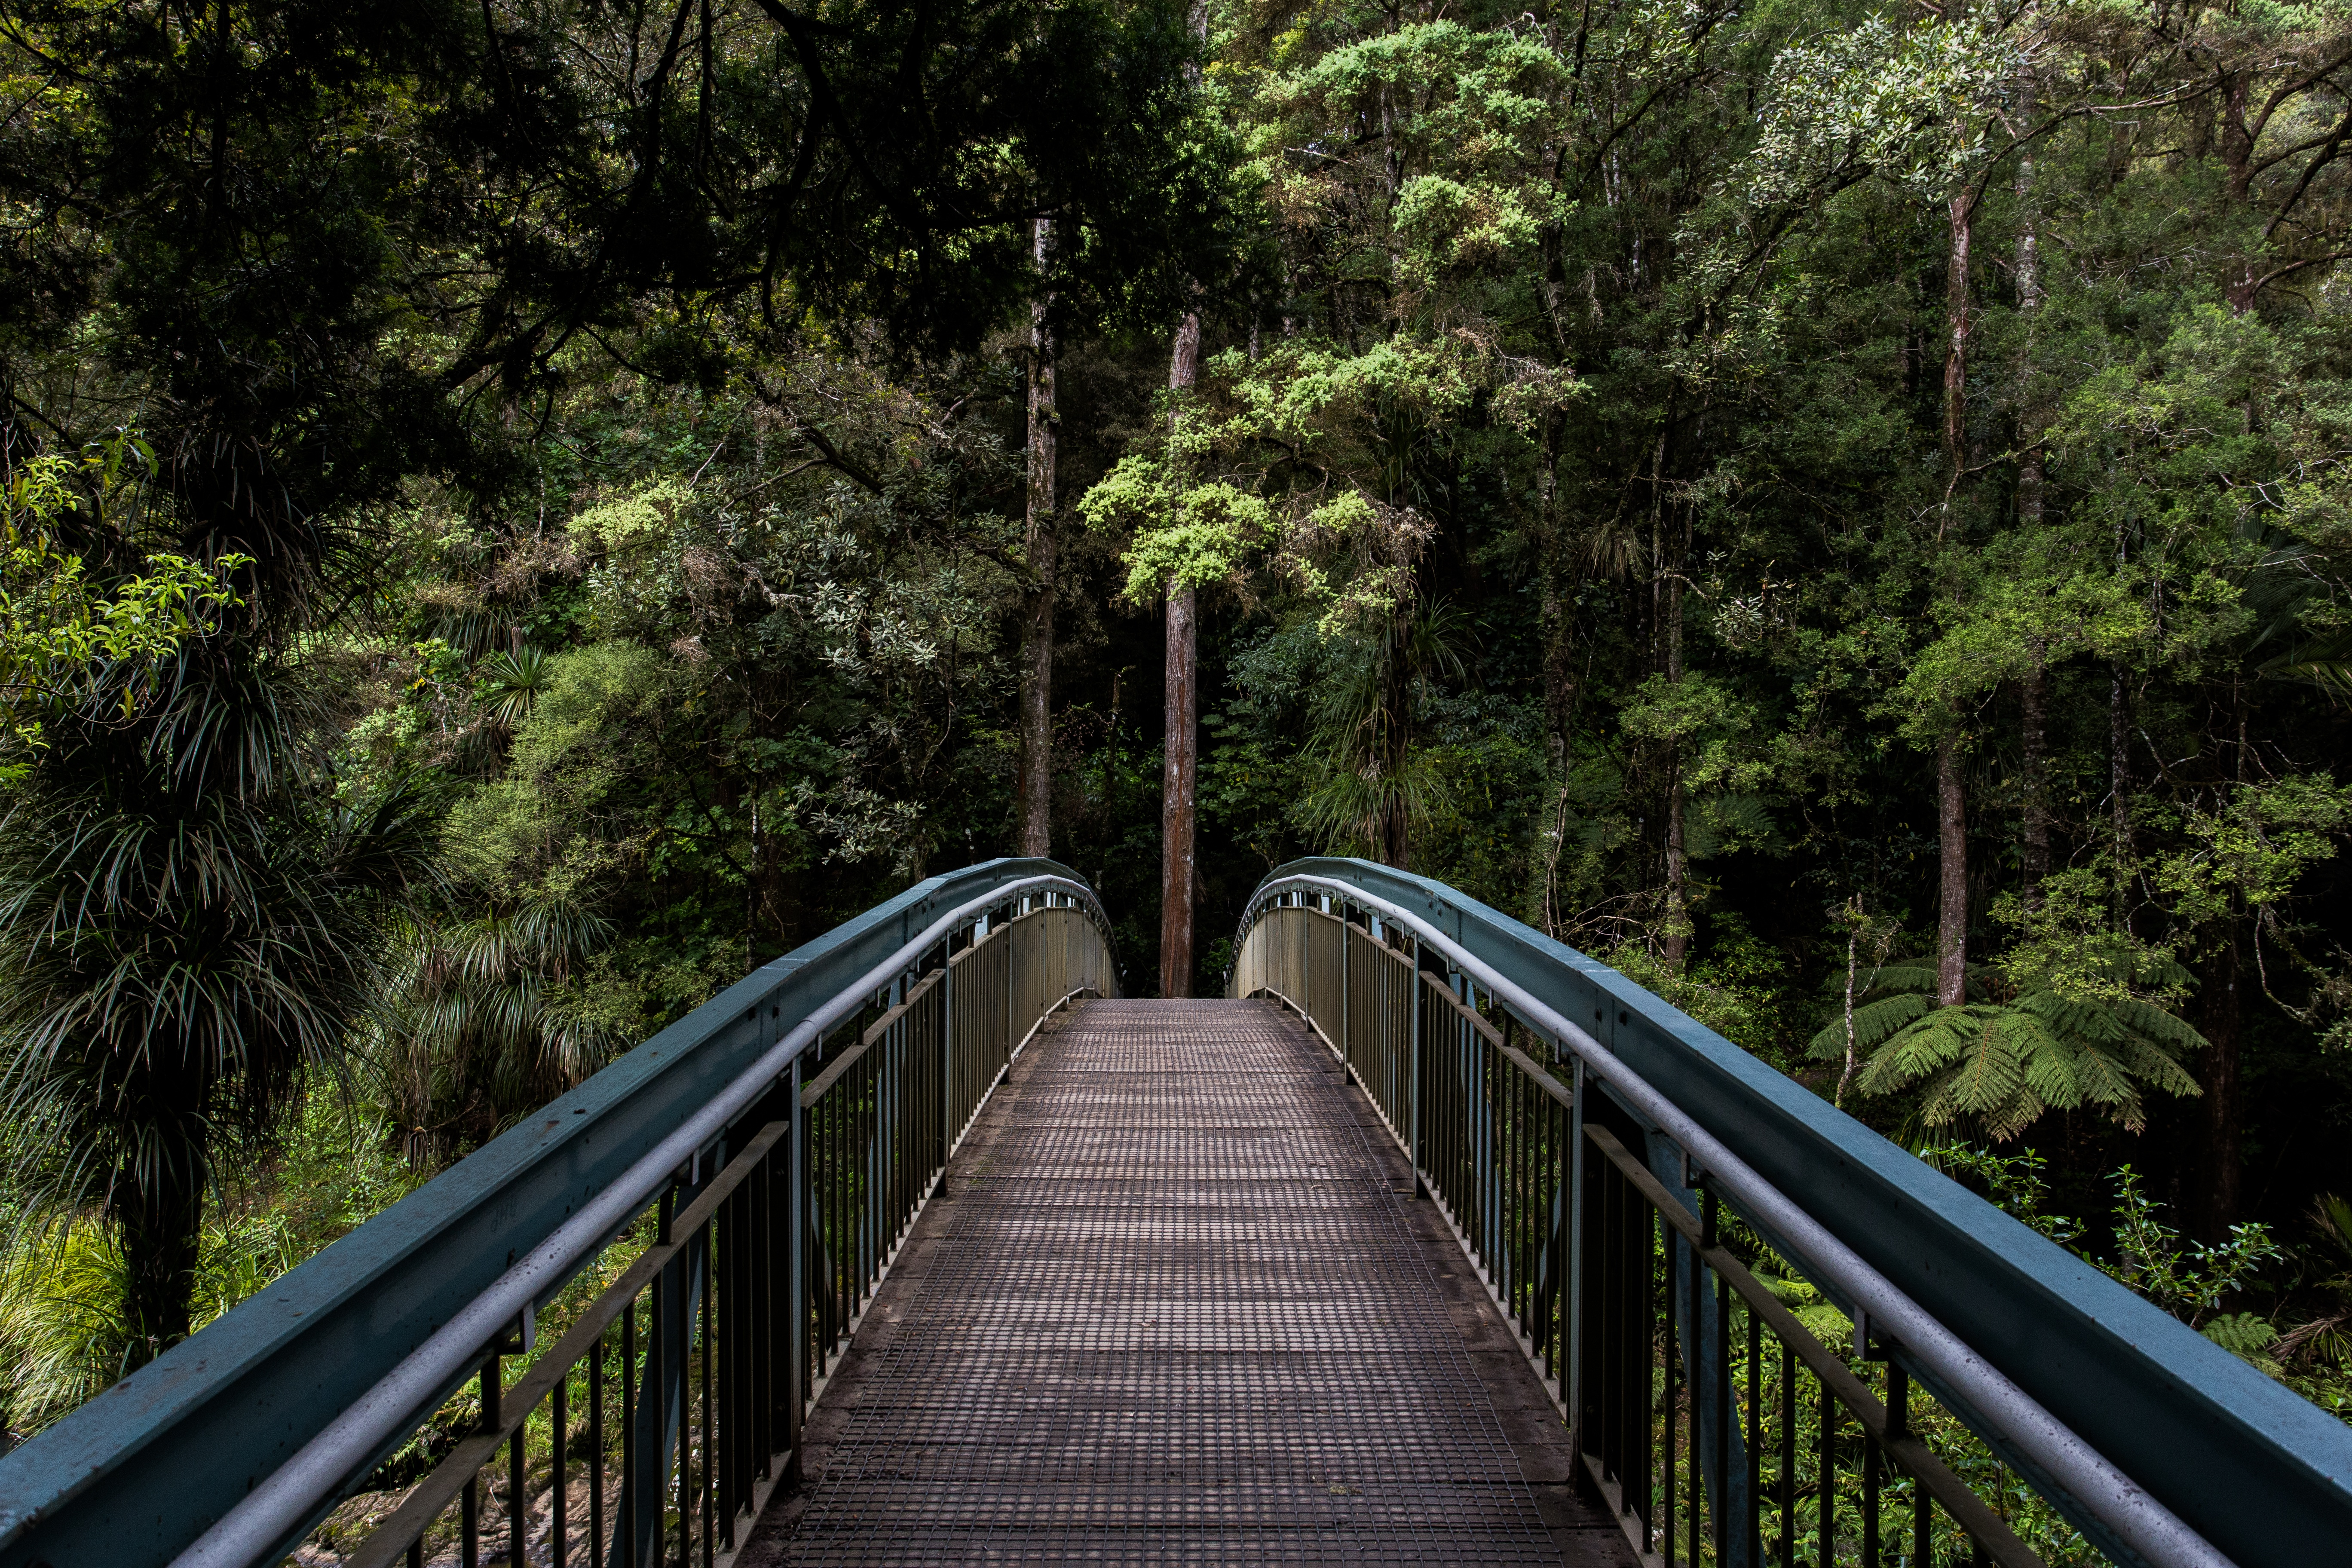 bridge-leading-into-the-forest